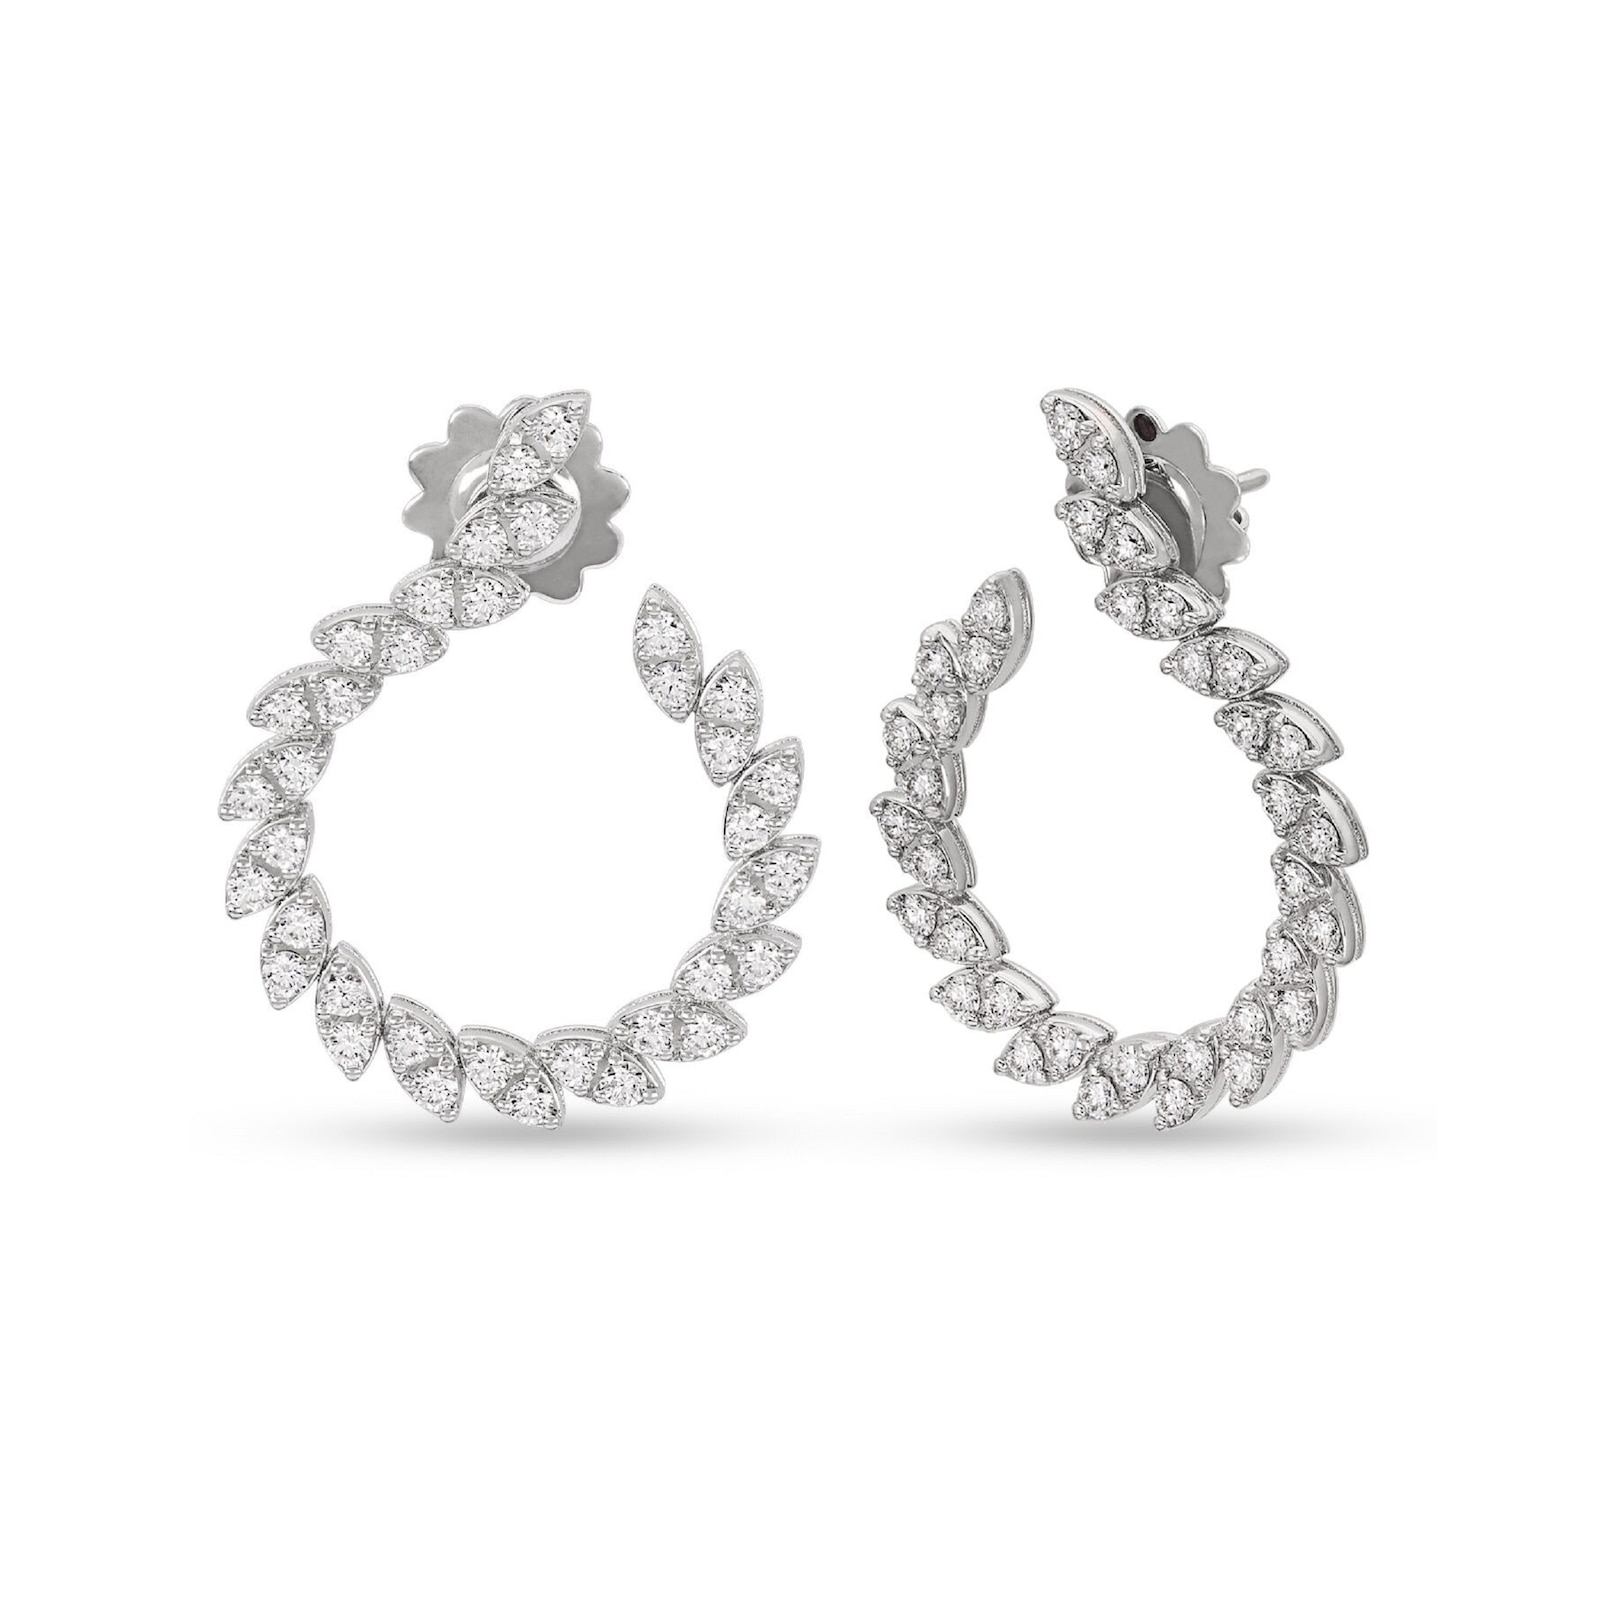 Roberto Coin The Marquesa Collection 18k White Gold 2.17cttw Diamond Earrings